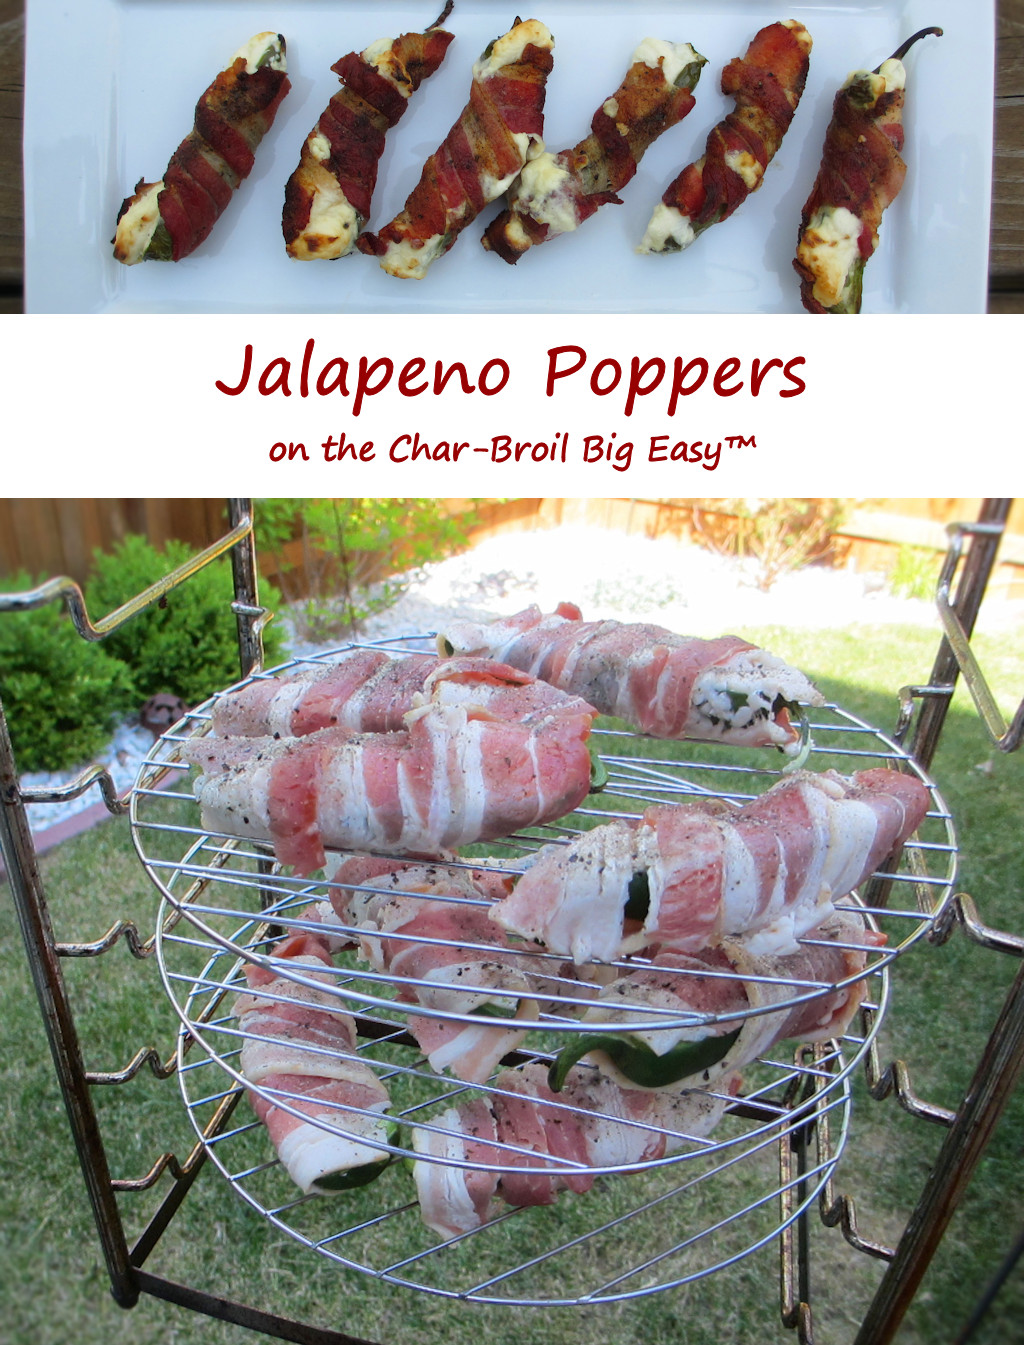 Jalapeno Poppers on the Char-Broil Big Easy